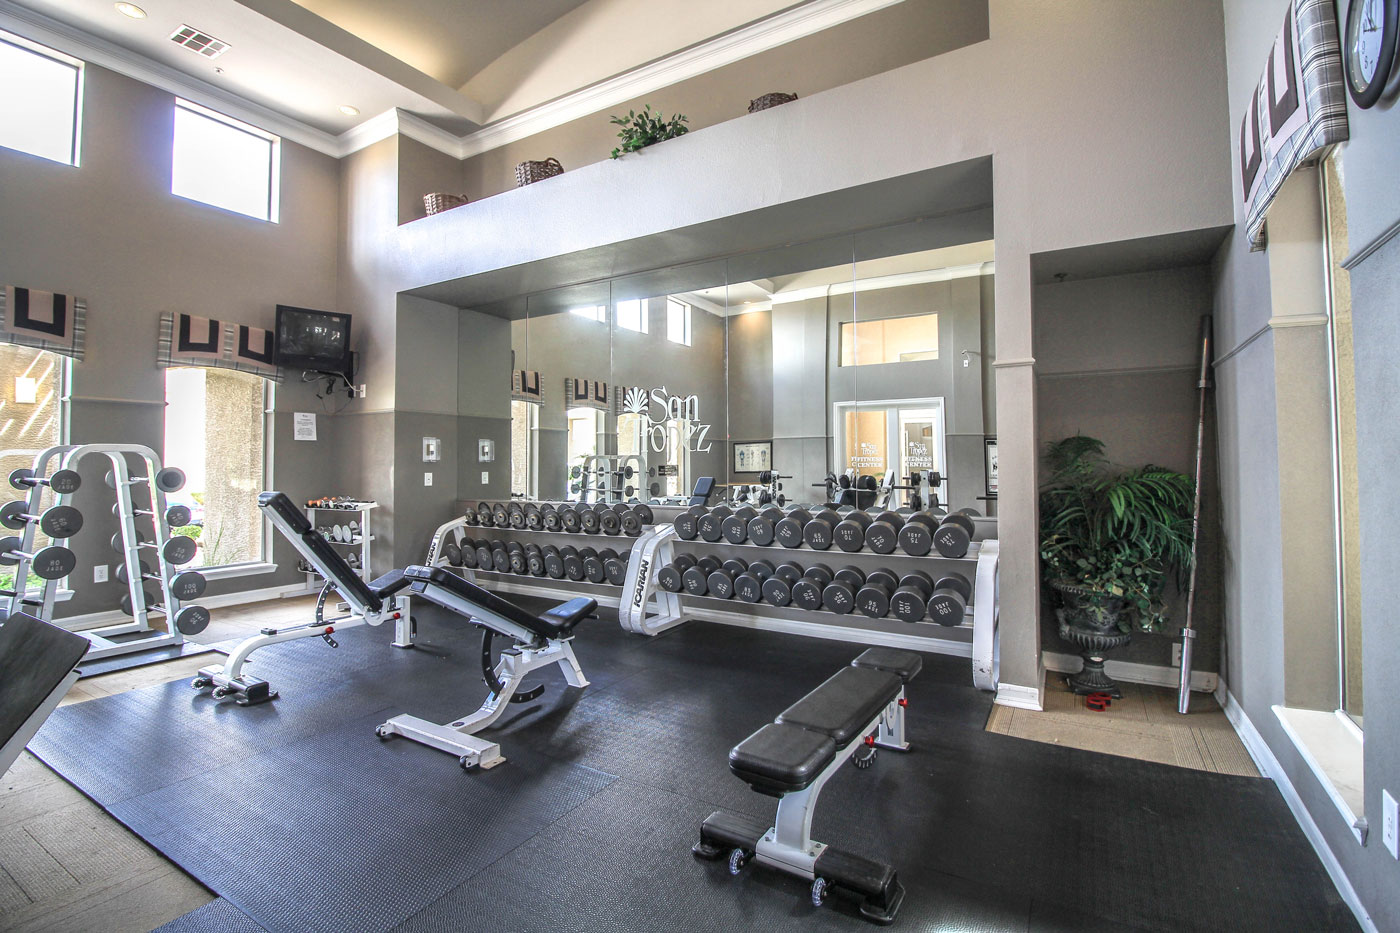 Weightroom with weight benches at San Tropez in Las Vegas.